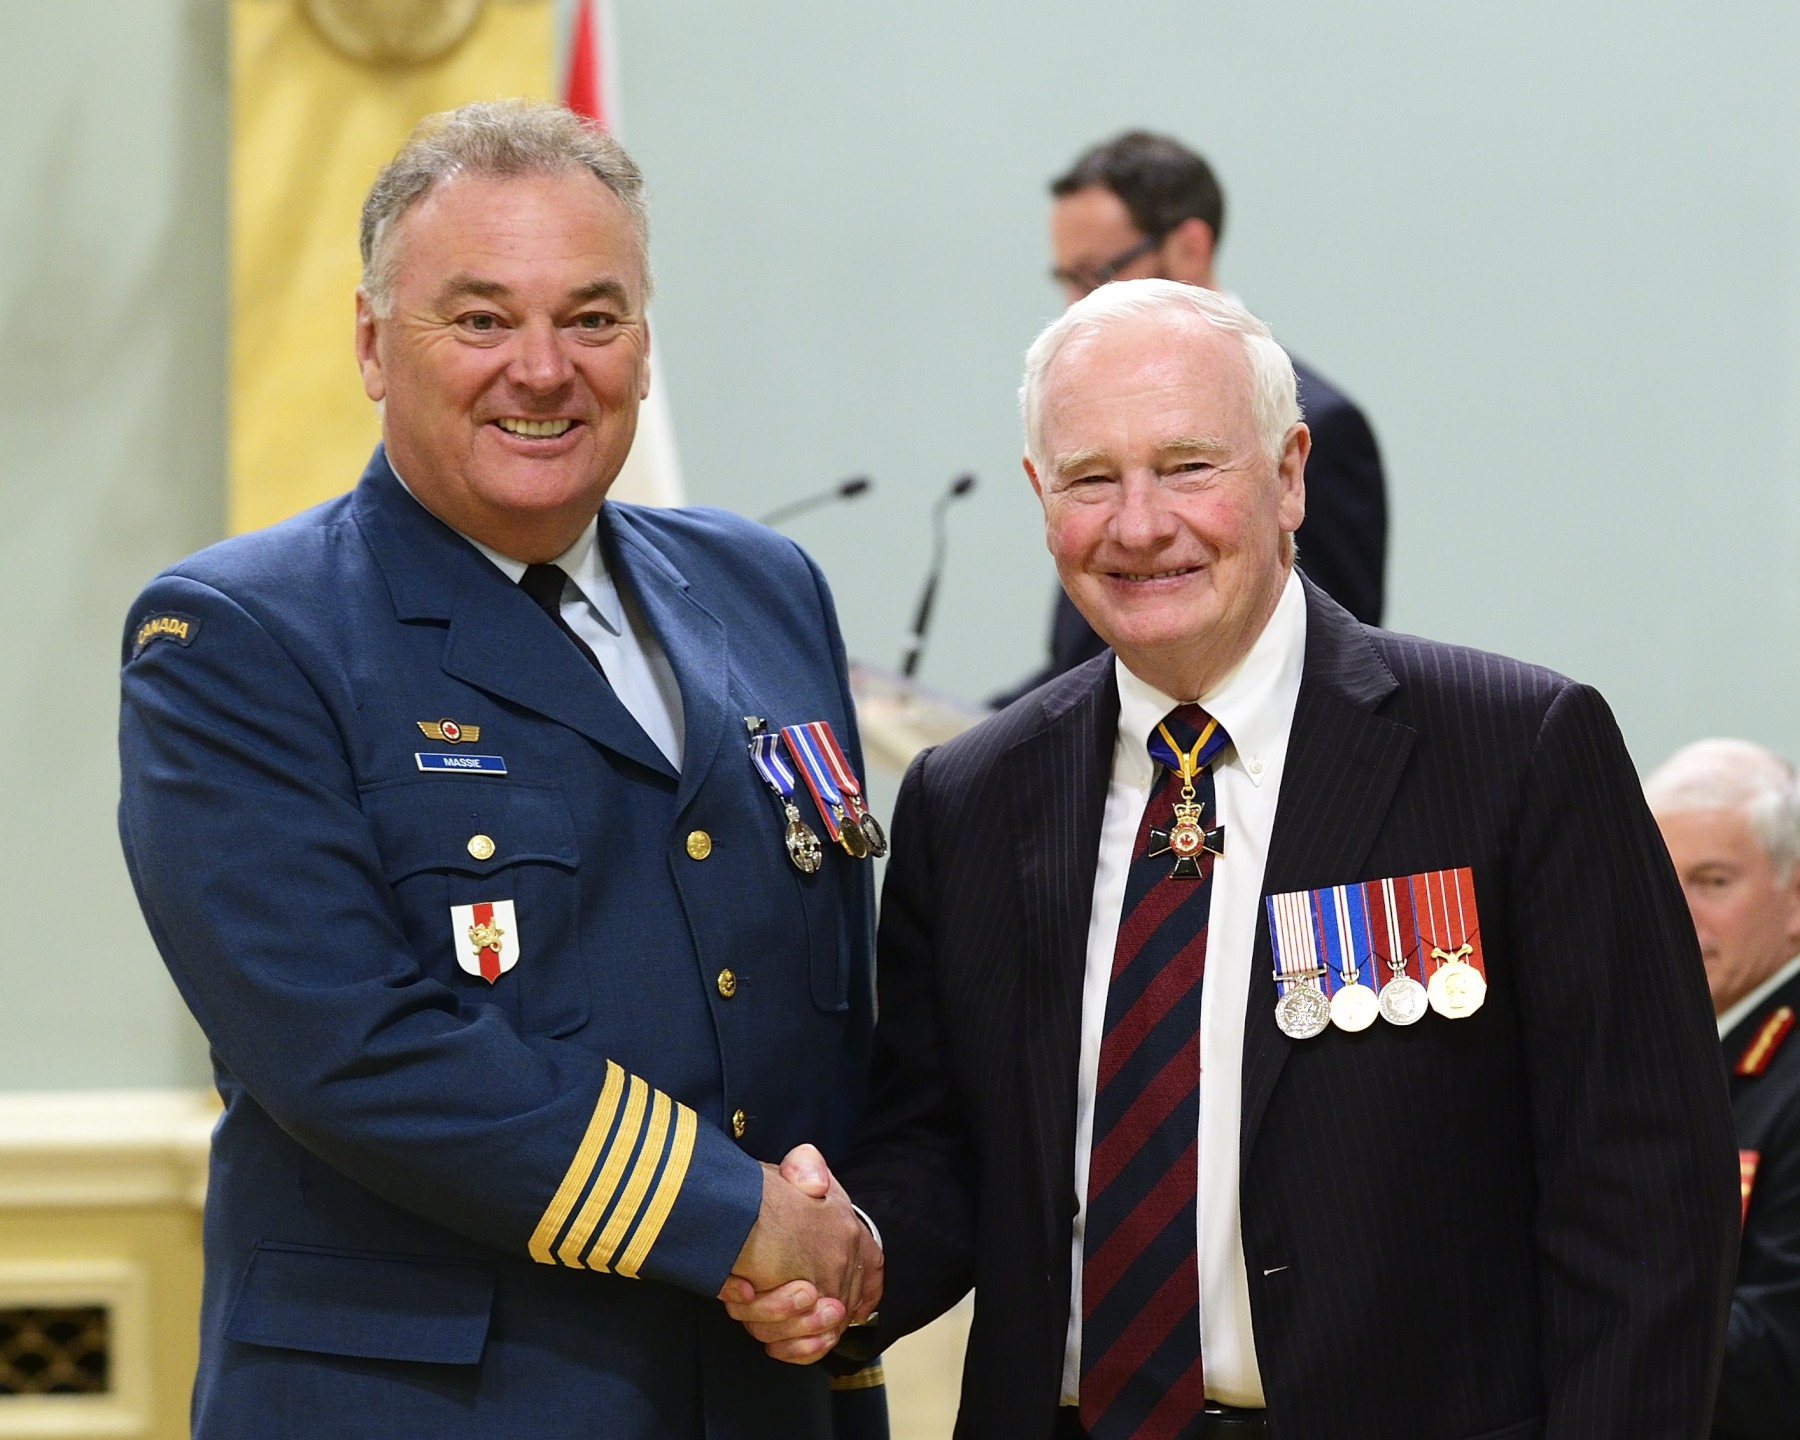 In 2009, Honorary Colonel James Gerald Massie, M.S.M. (Barrie, Ontario) initiated the establishment of the Operation Hero scholarship fund, which has since raised more than $850,000, benefiting military dependants who attend Georgian College. His mentorship inspired creative, collaborative projects where military and civilian personnel worked together for the betterment of their shared communities. Honorary Colonel Massie's energy, professionalism and dedication have benefited the Canadian Armed Forces as well as his local community of Barrie.